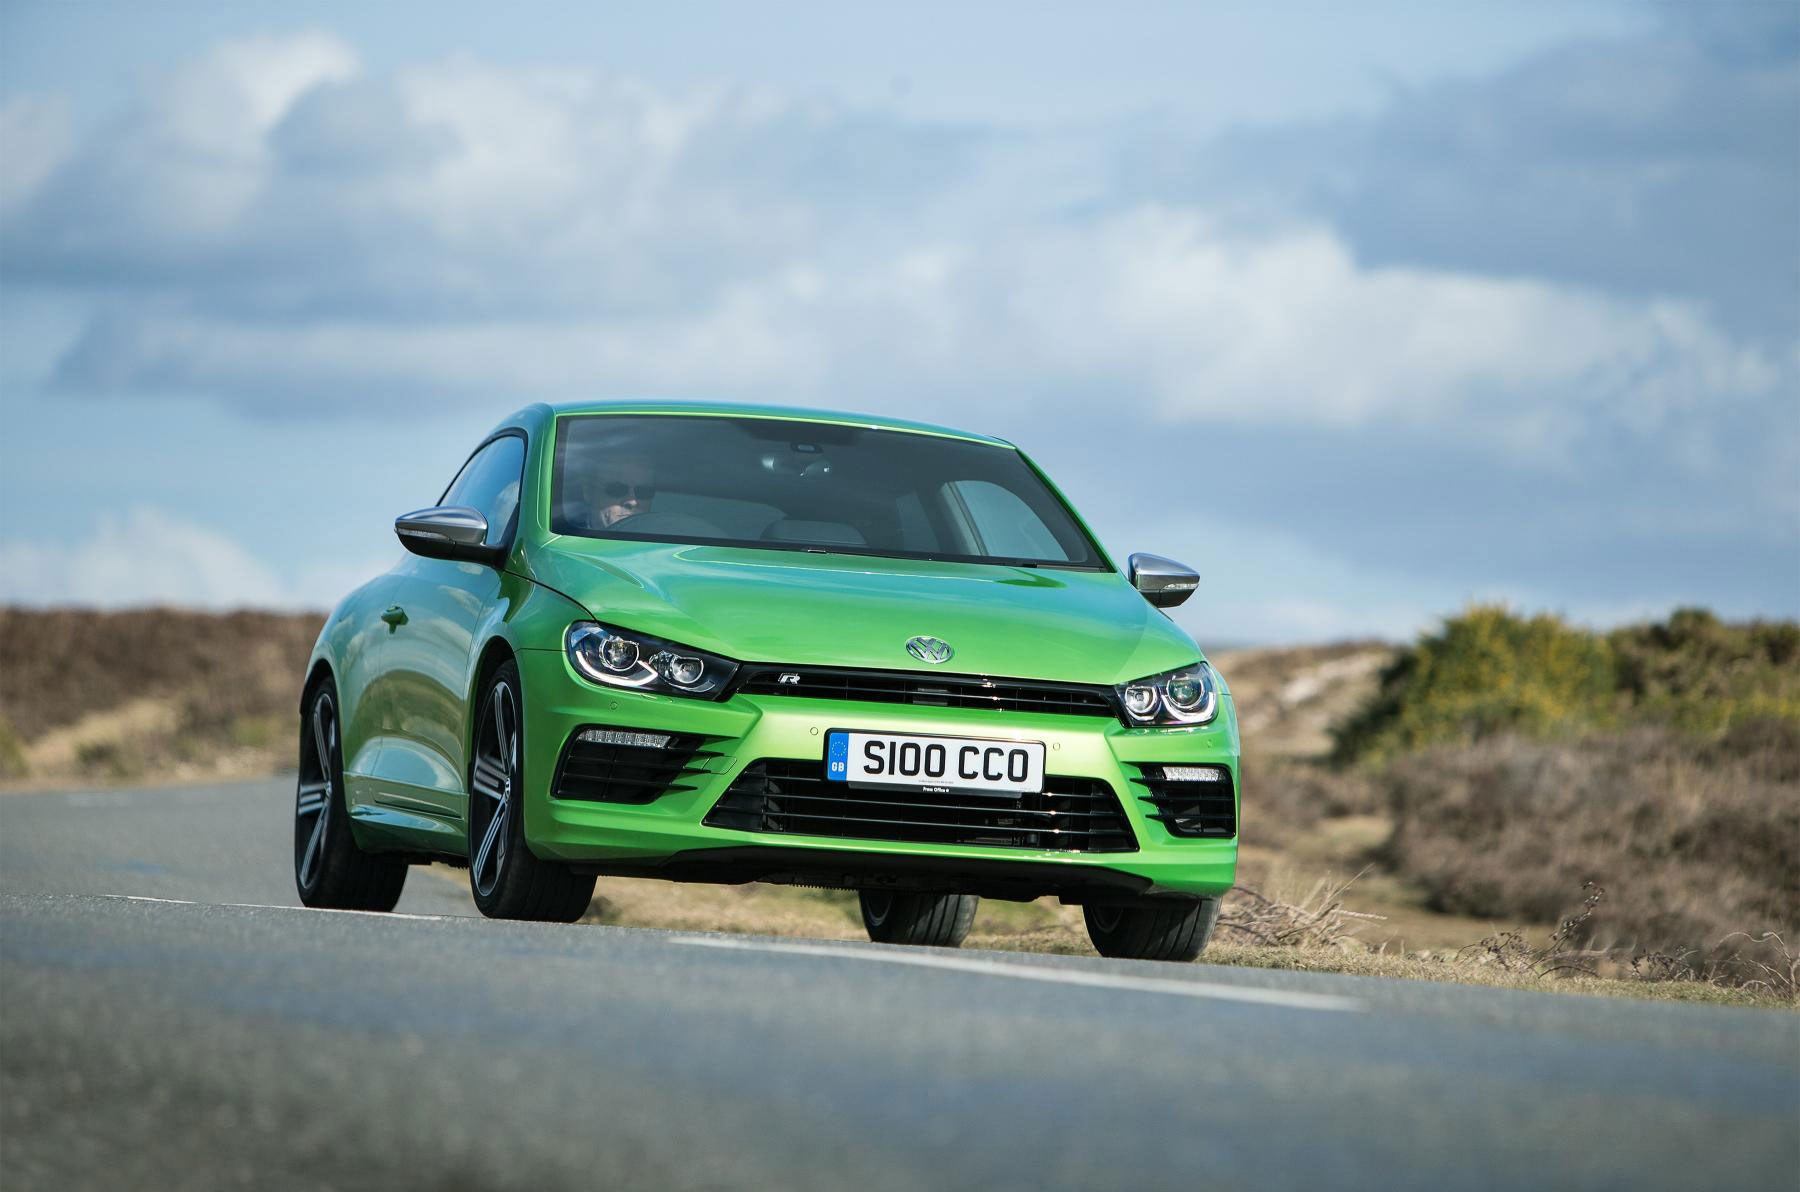 The Vw Scirocco Very Green